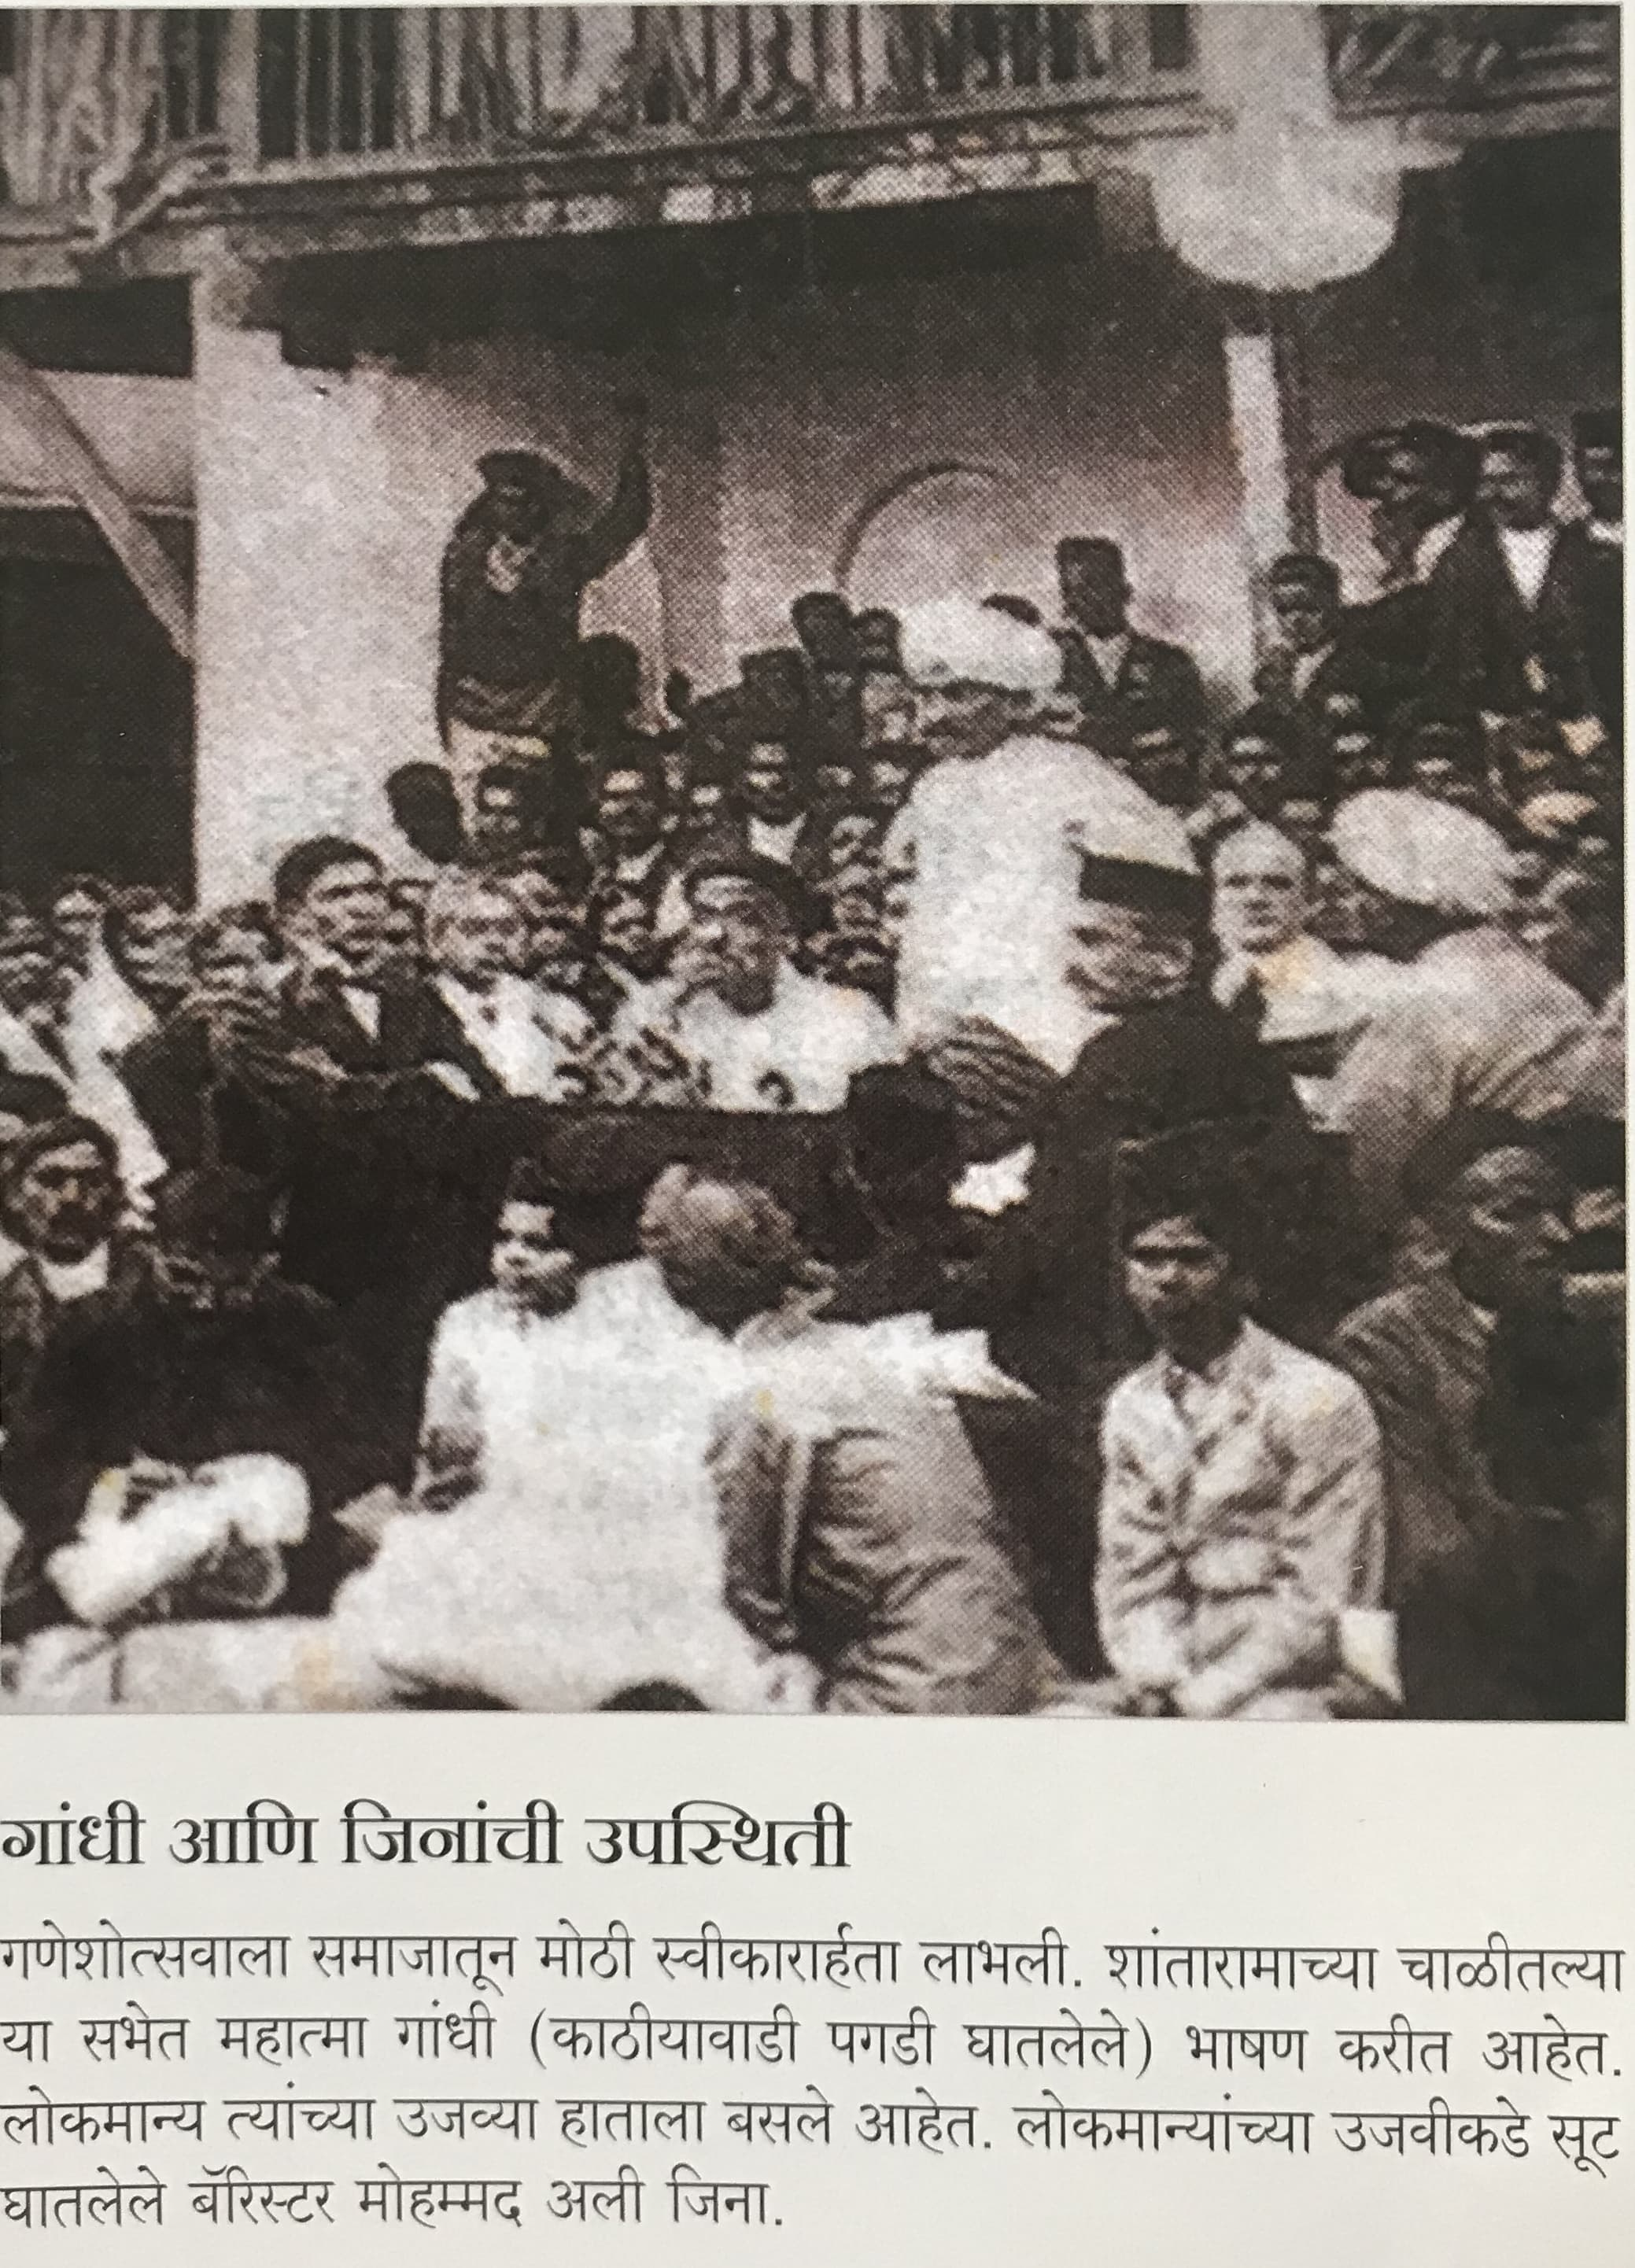 Caption as translated from Marathi script shown in the photograph: Lokmanya Tilak (centre), Mahatma Gandhi (standing, in white turban) and Quaid-i-Azam Mohammad Ali Jinnah (to Tilak's right, in a western suit) at a public meeting in Bombay's Shantaram Chawl. — Source: An illustrated biography of Tilak by Lokmanya Tilak Vichar Manch, Pune.